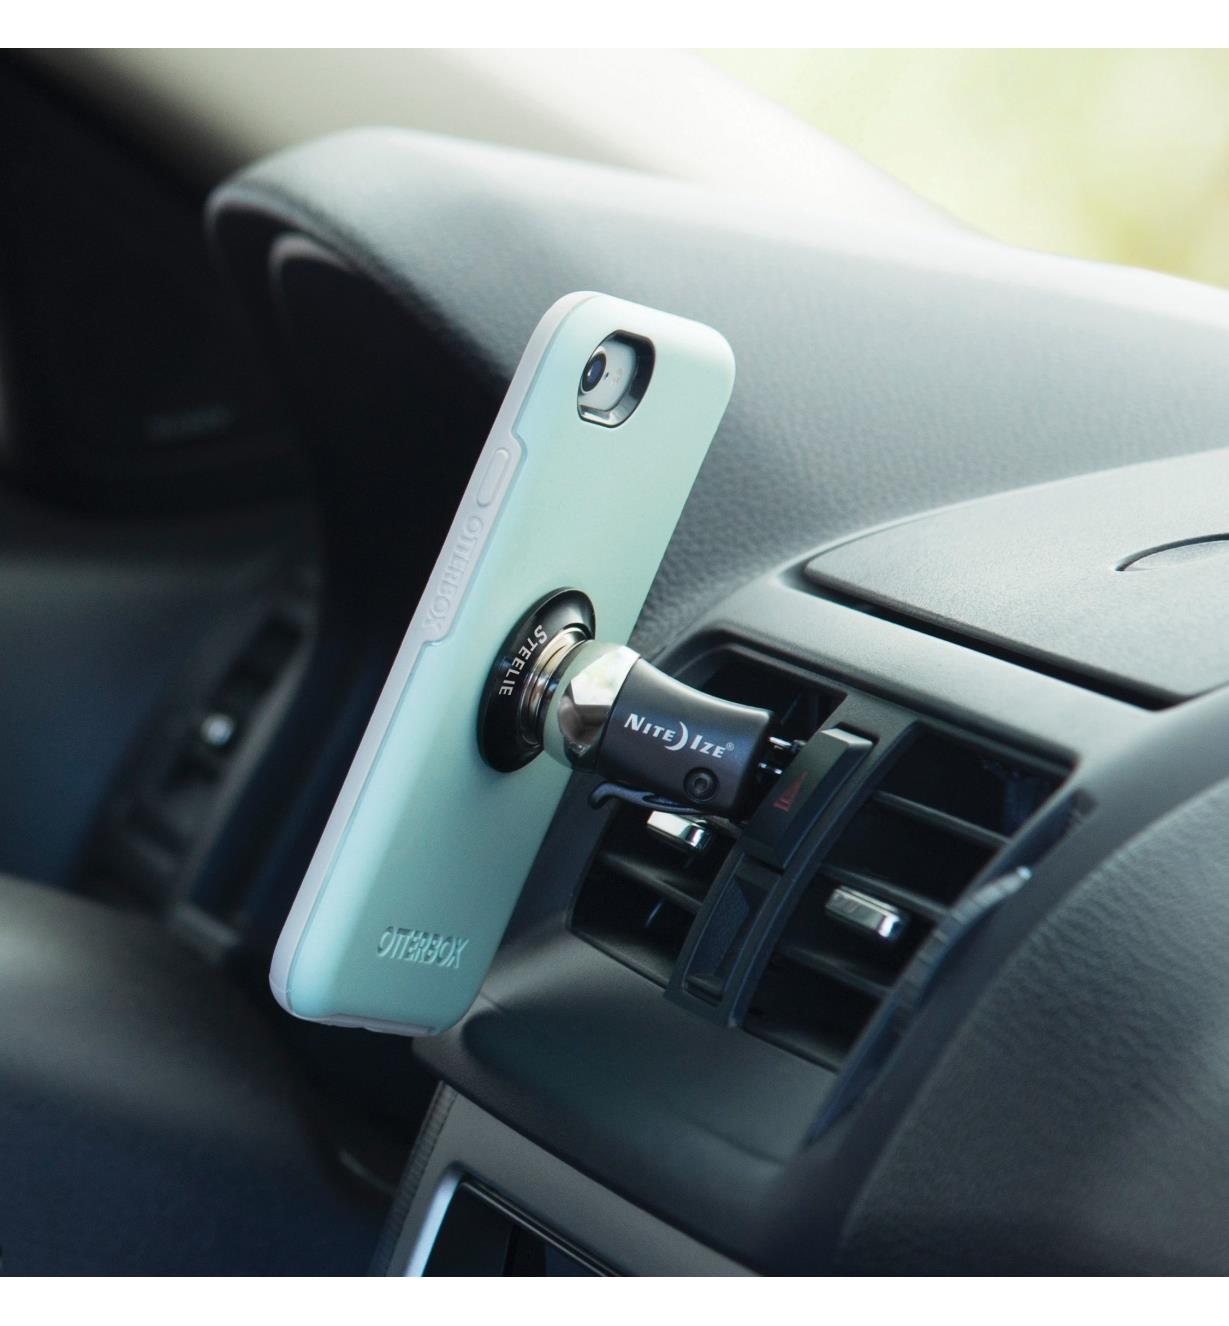 Cell phone attached to the vent-mount kit installed in a car vent